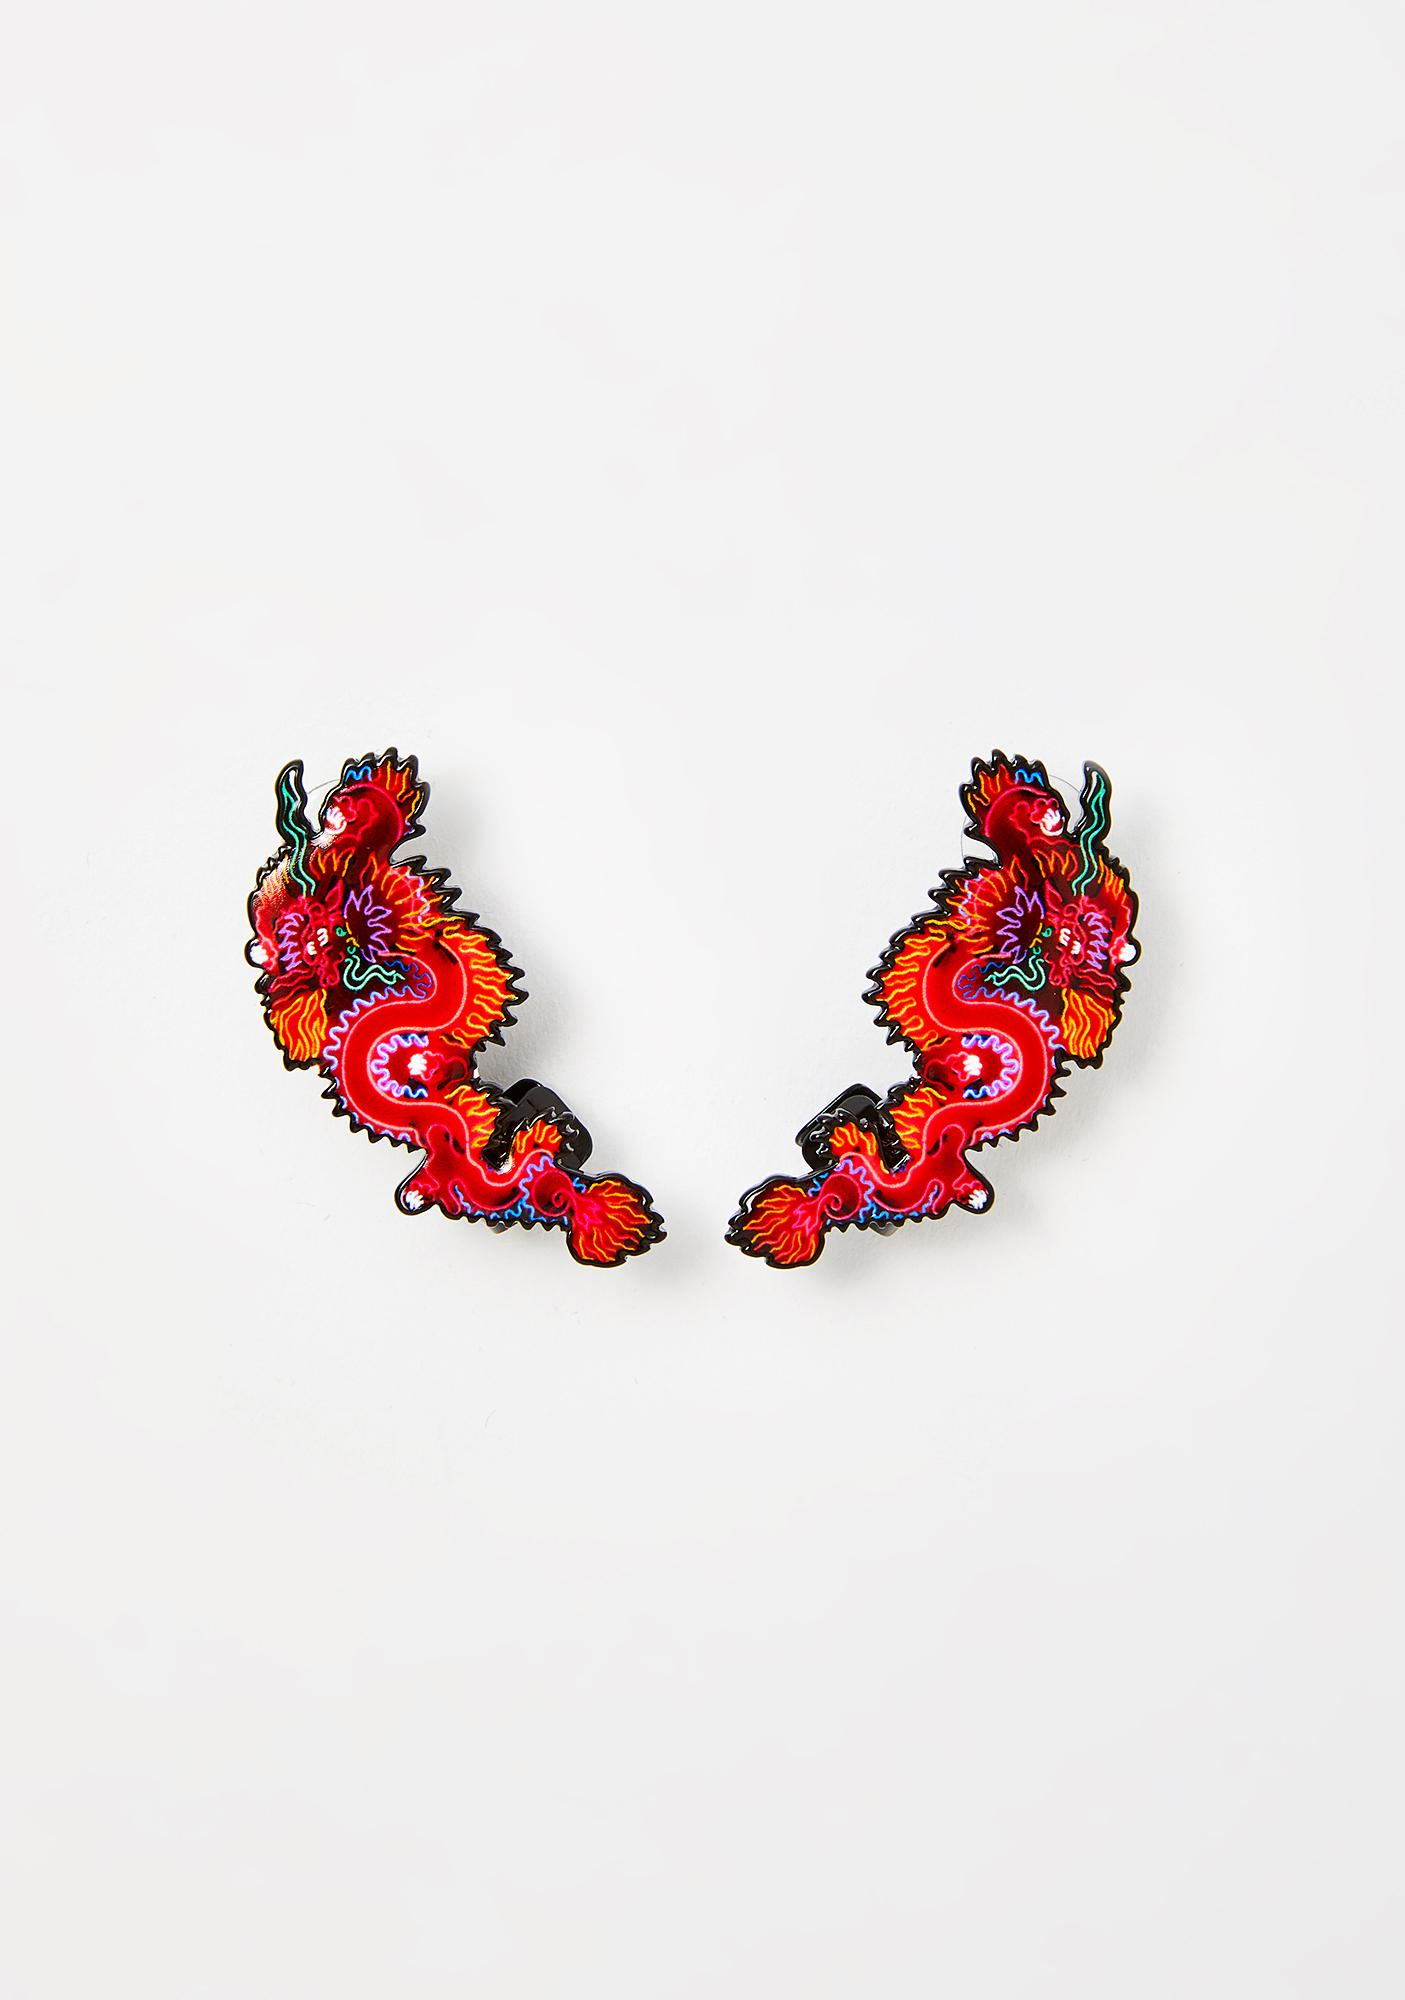 Mystic Tamer Dragon Earrings